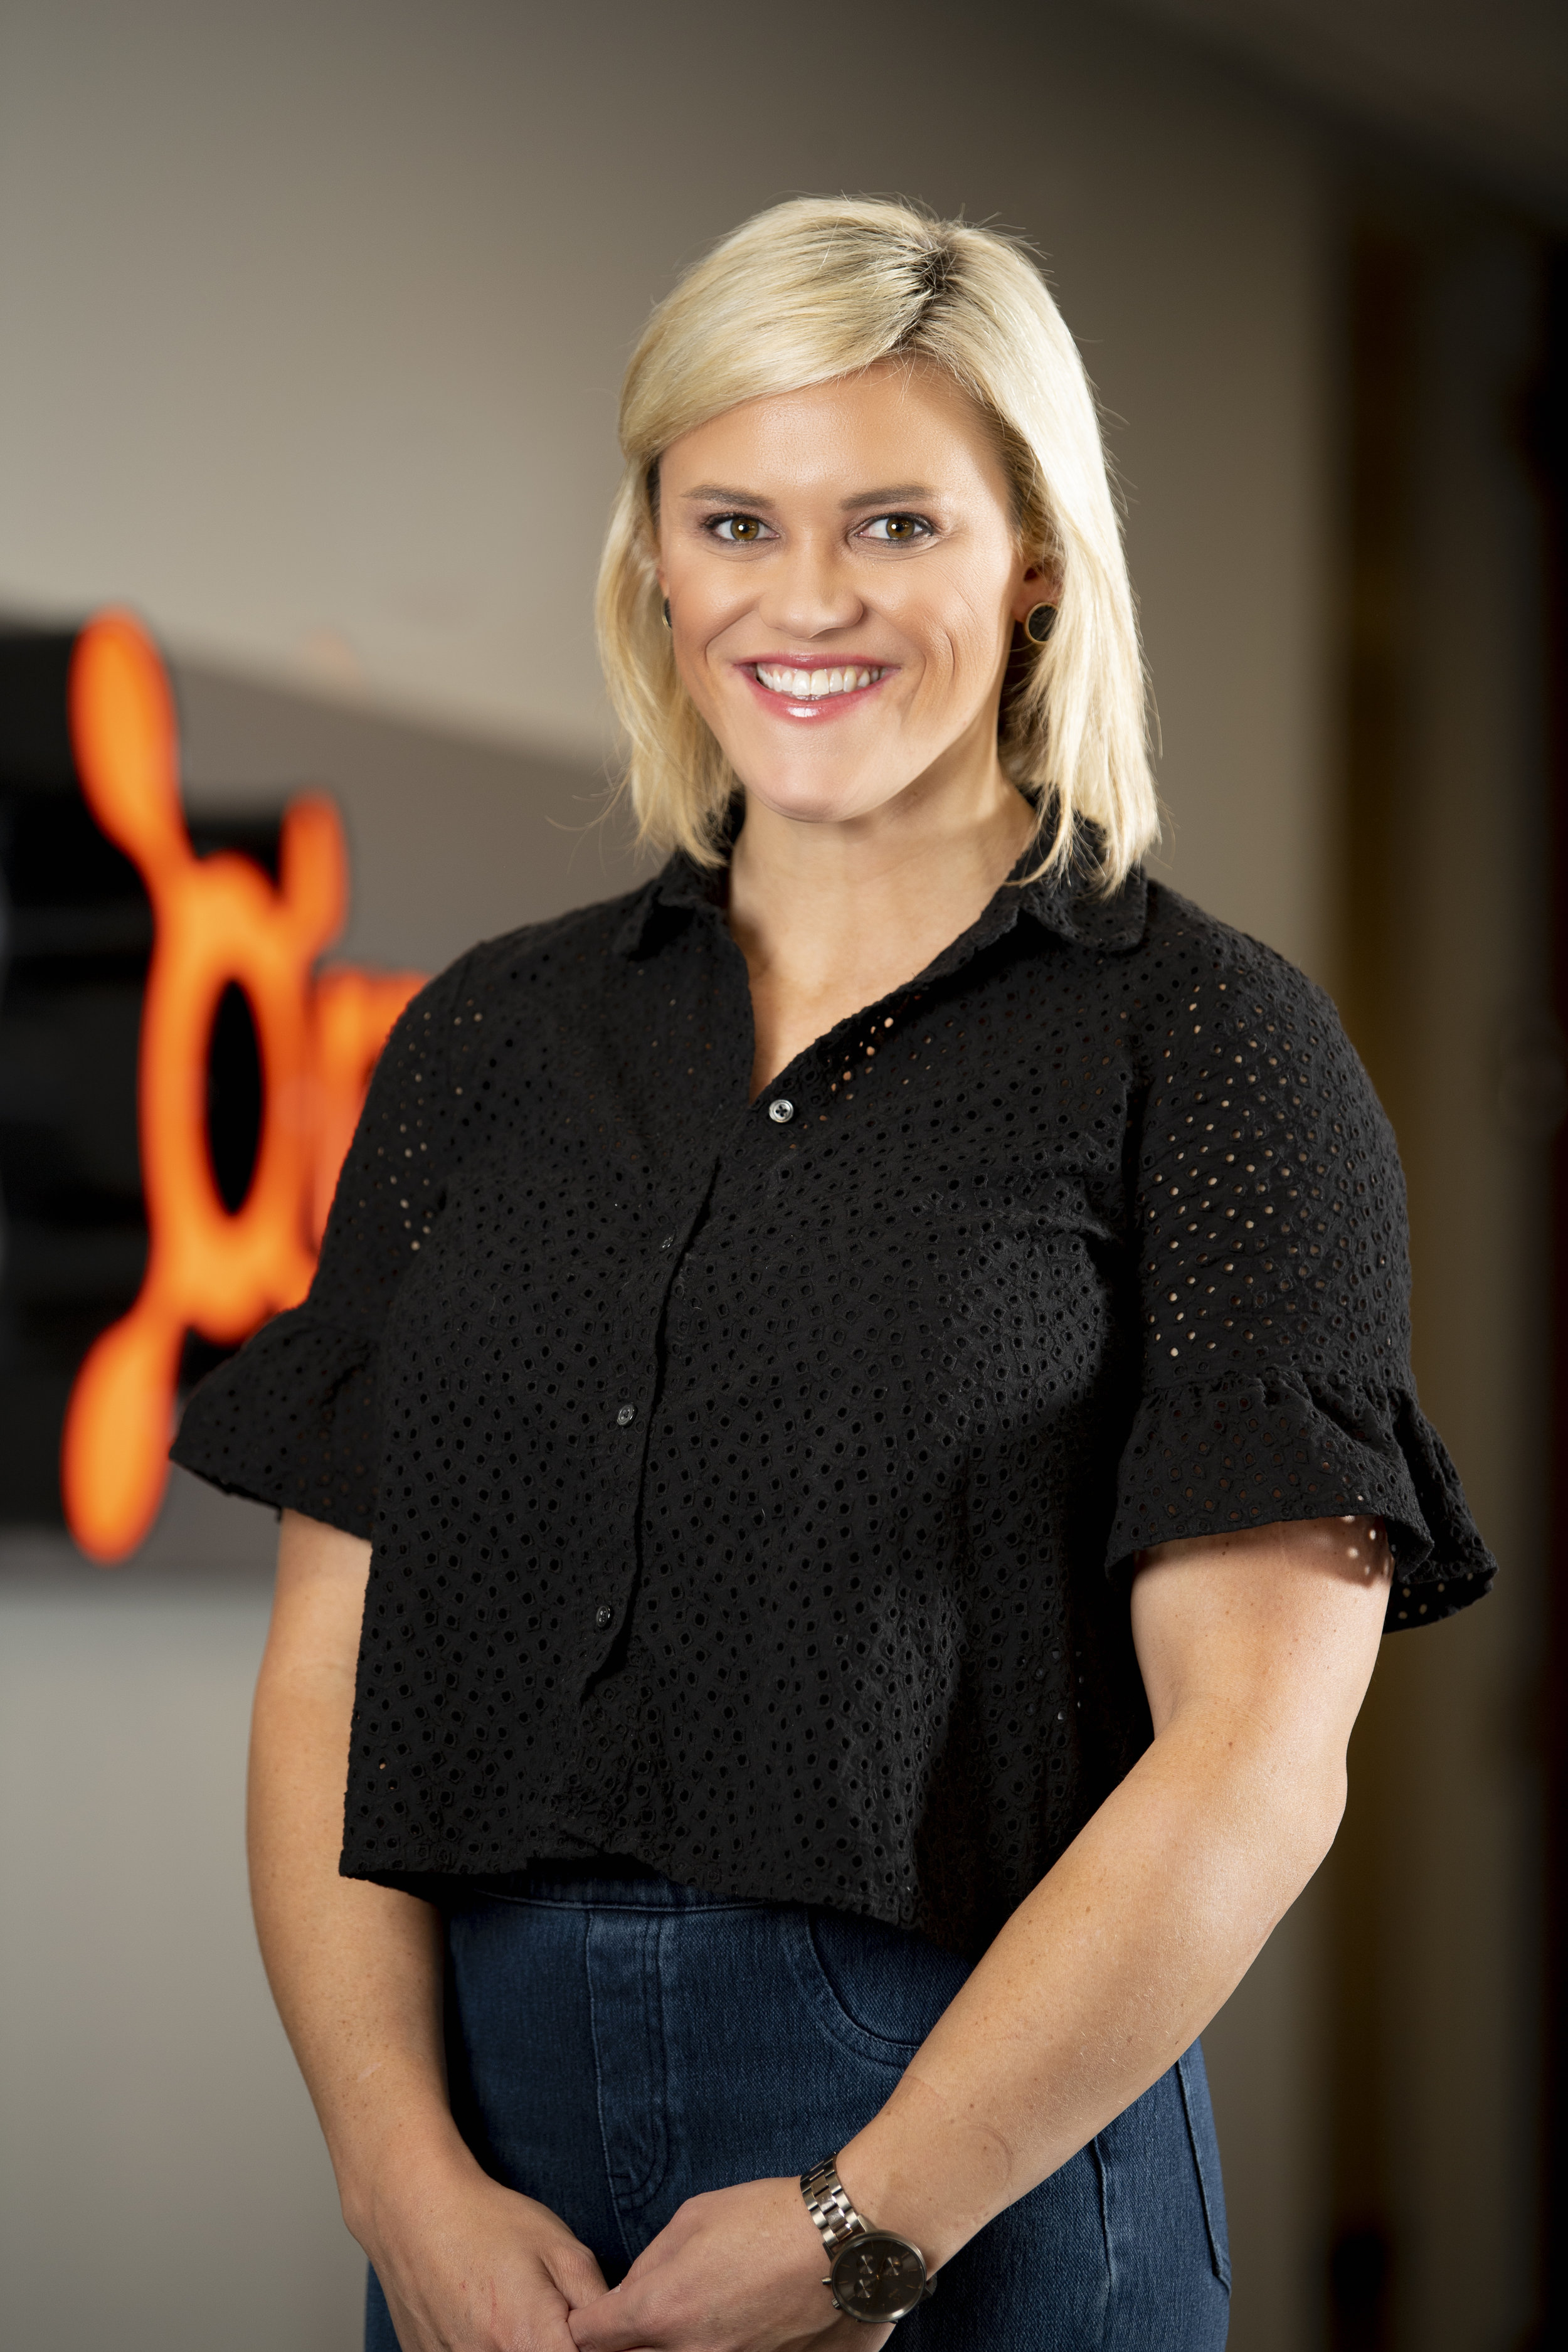 Jessica Claussen - National Director of FitnessJessica is the National Director of Fitness. She started with Orangetheory in 2013 as a member and quickly fell in love with the workout. She joined the Orangetheory Fitness team as a coach in 2014, and later transitioned into management and development of fitness. She graduated from Auburn University with a degree in Psychology. Jessica loves working out and Auburn football.